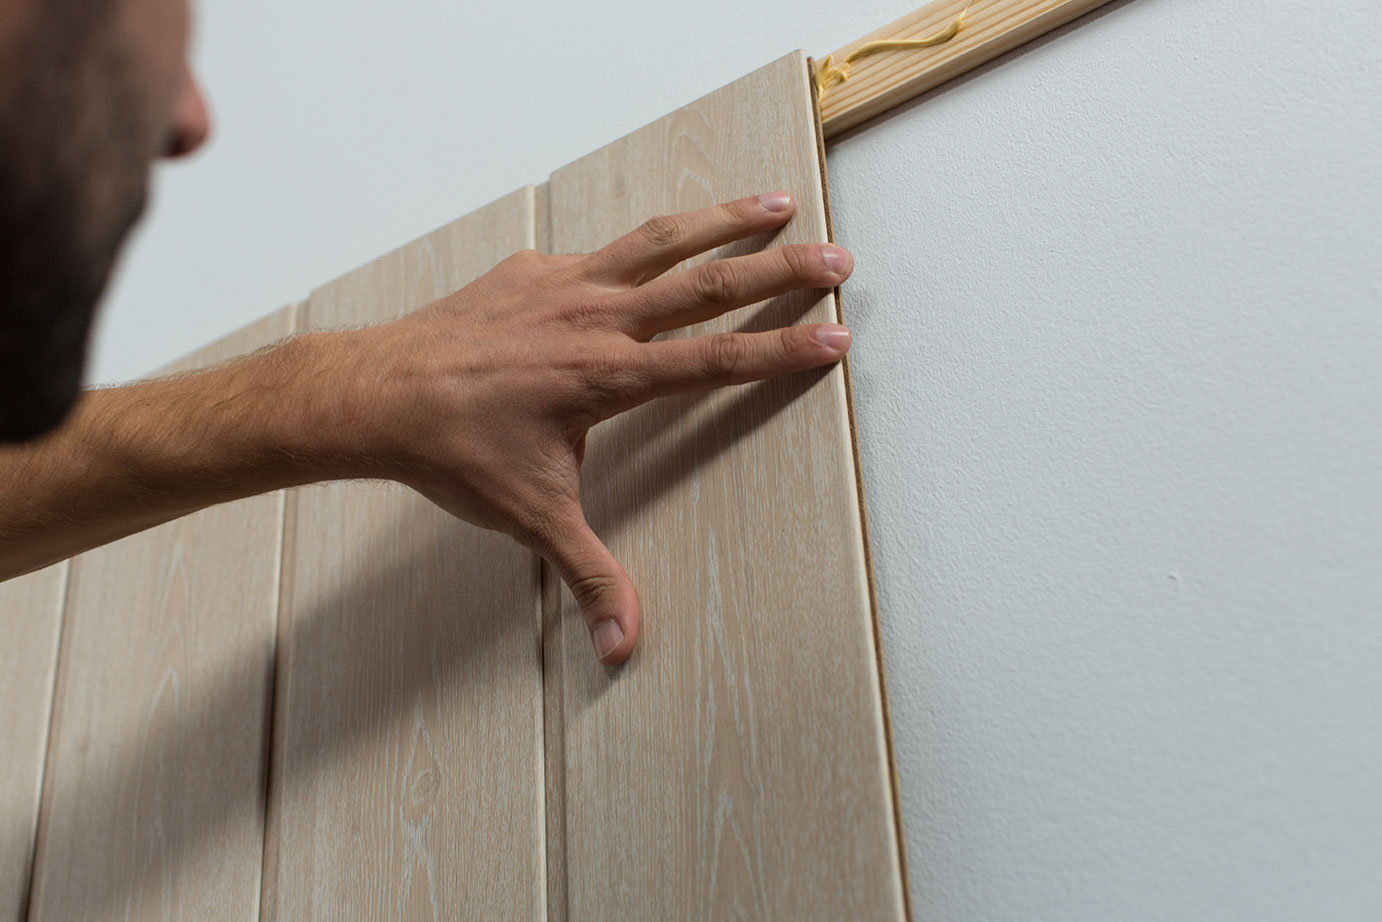 C mo colocar un friso de madera para decorar la pared ceys for Frisos para pared